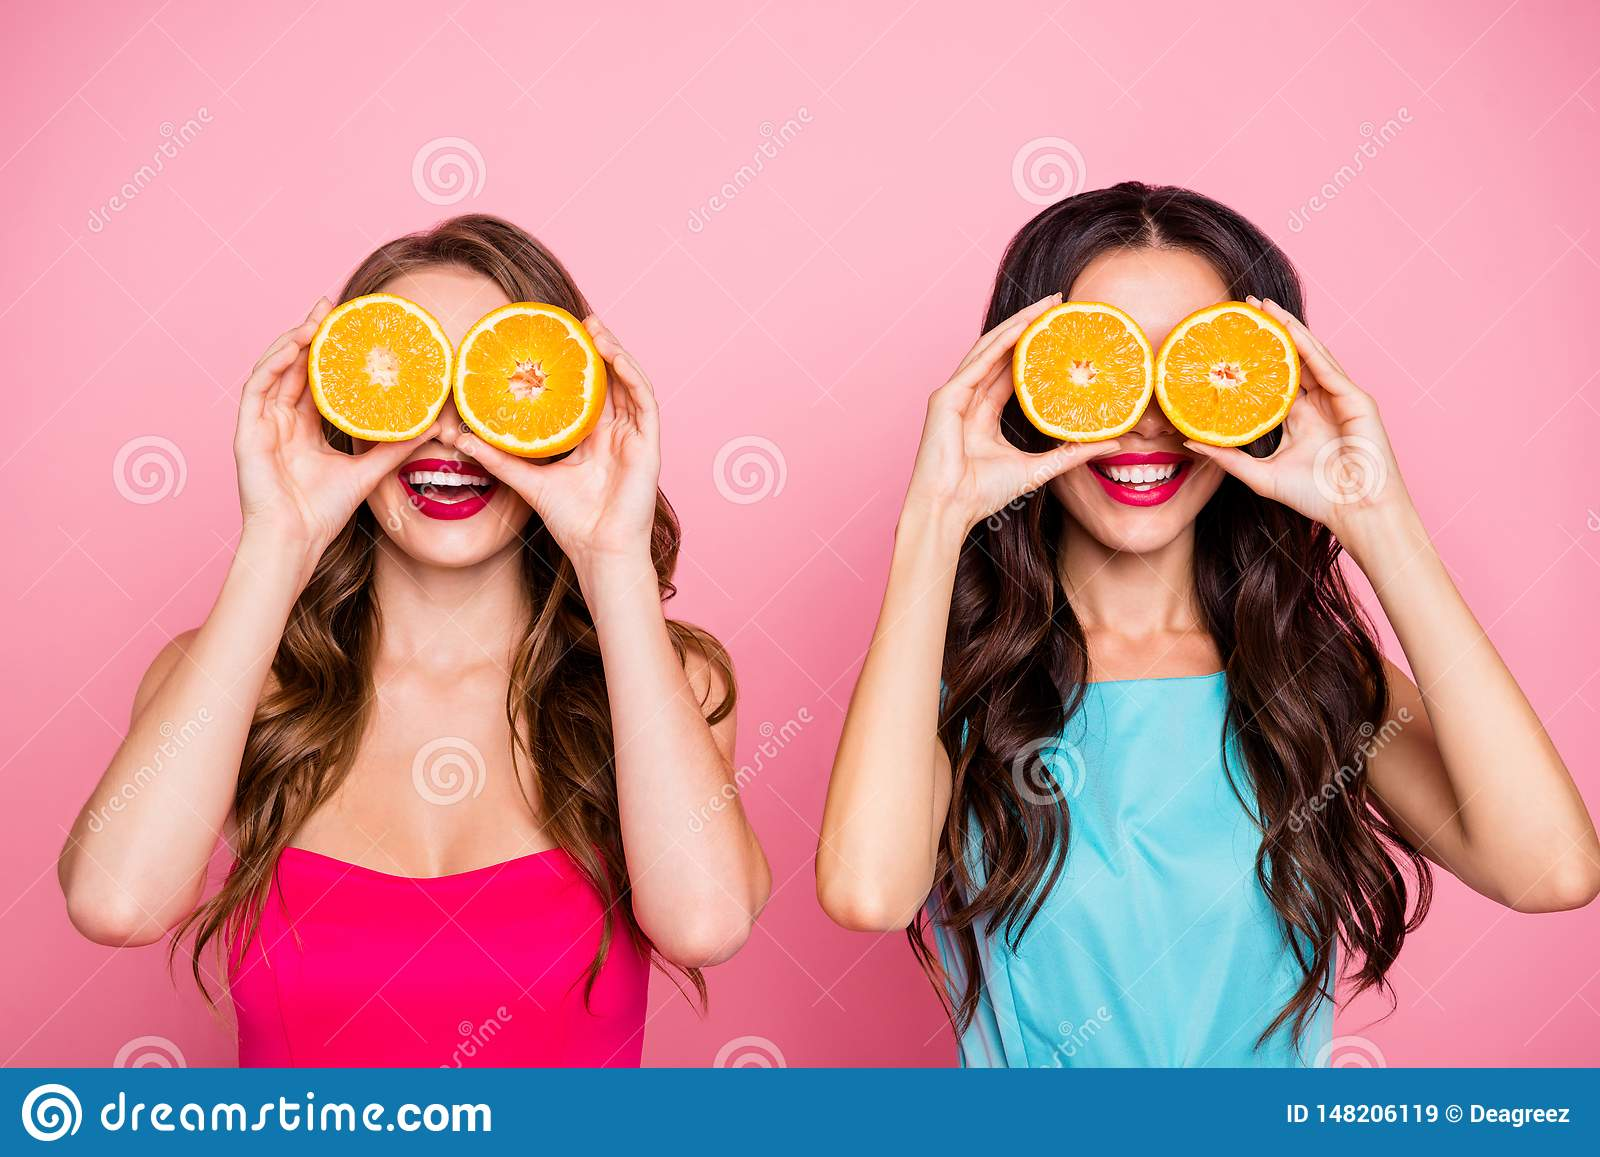 Close up photo two people beautiful she her ladies hands arms hold hide eyes specs organic nature fruits party festive